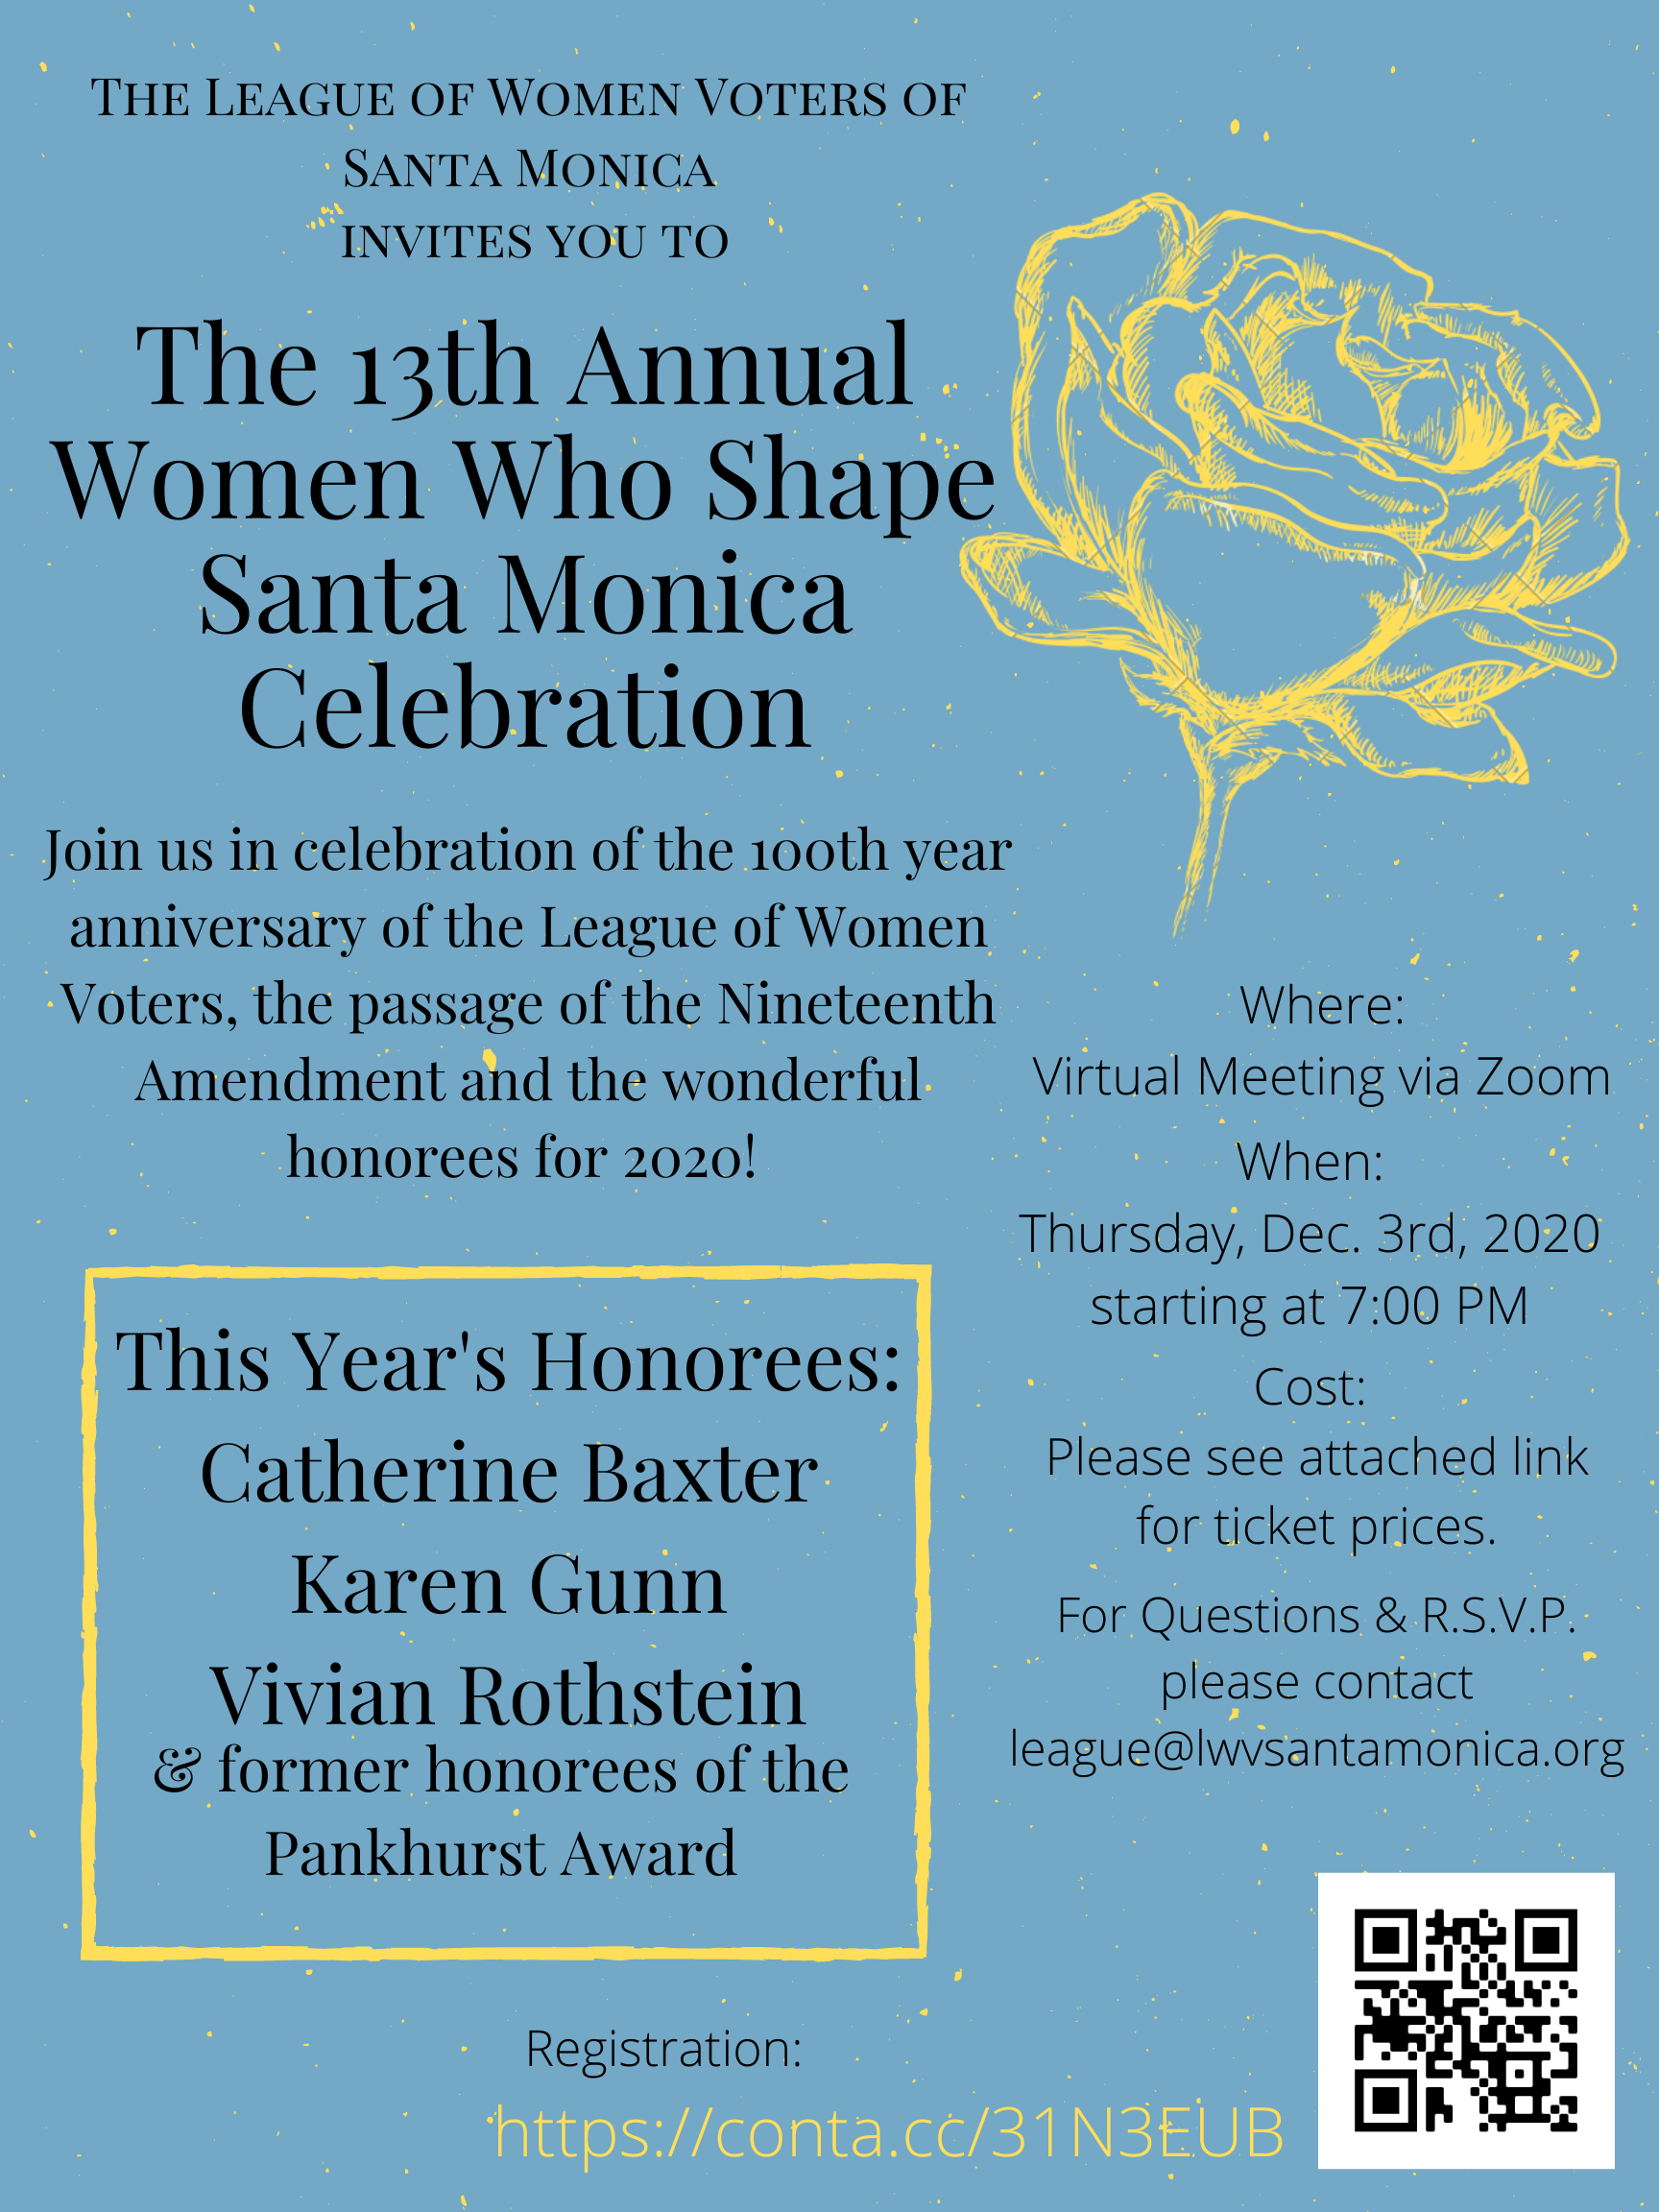 Informational Flyer for Women Who Shape Santa Monica 2020 Celebration. Blue Background with yellow rose image and text